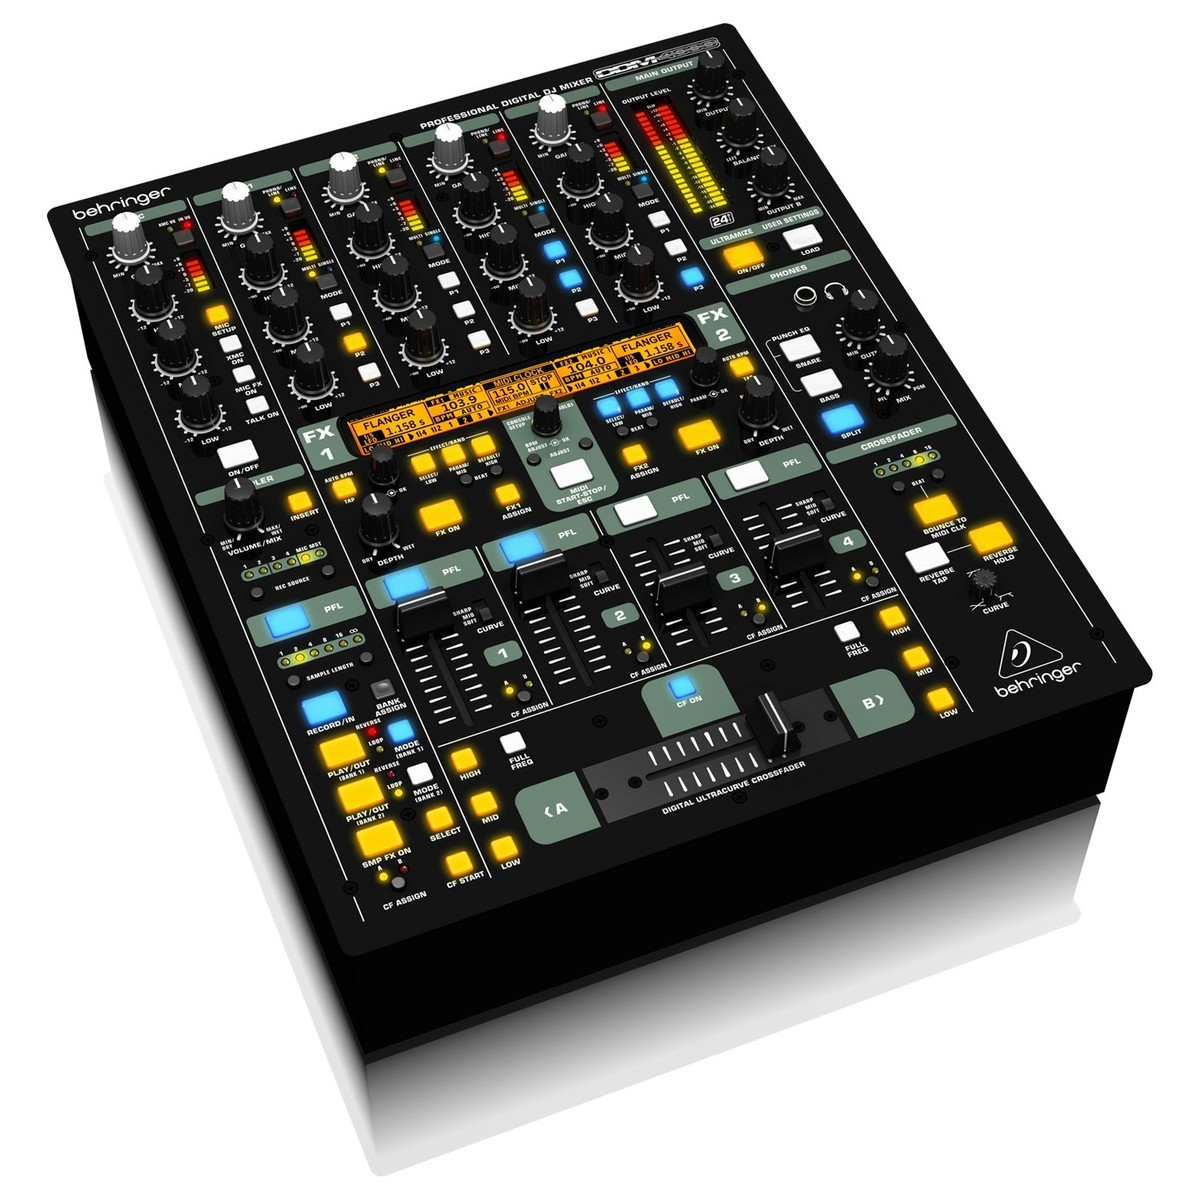 behringer ddm4000 digital pro mixer at gear4music. Black Bedroom Furniture Sets. Home Design Ideas